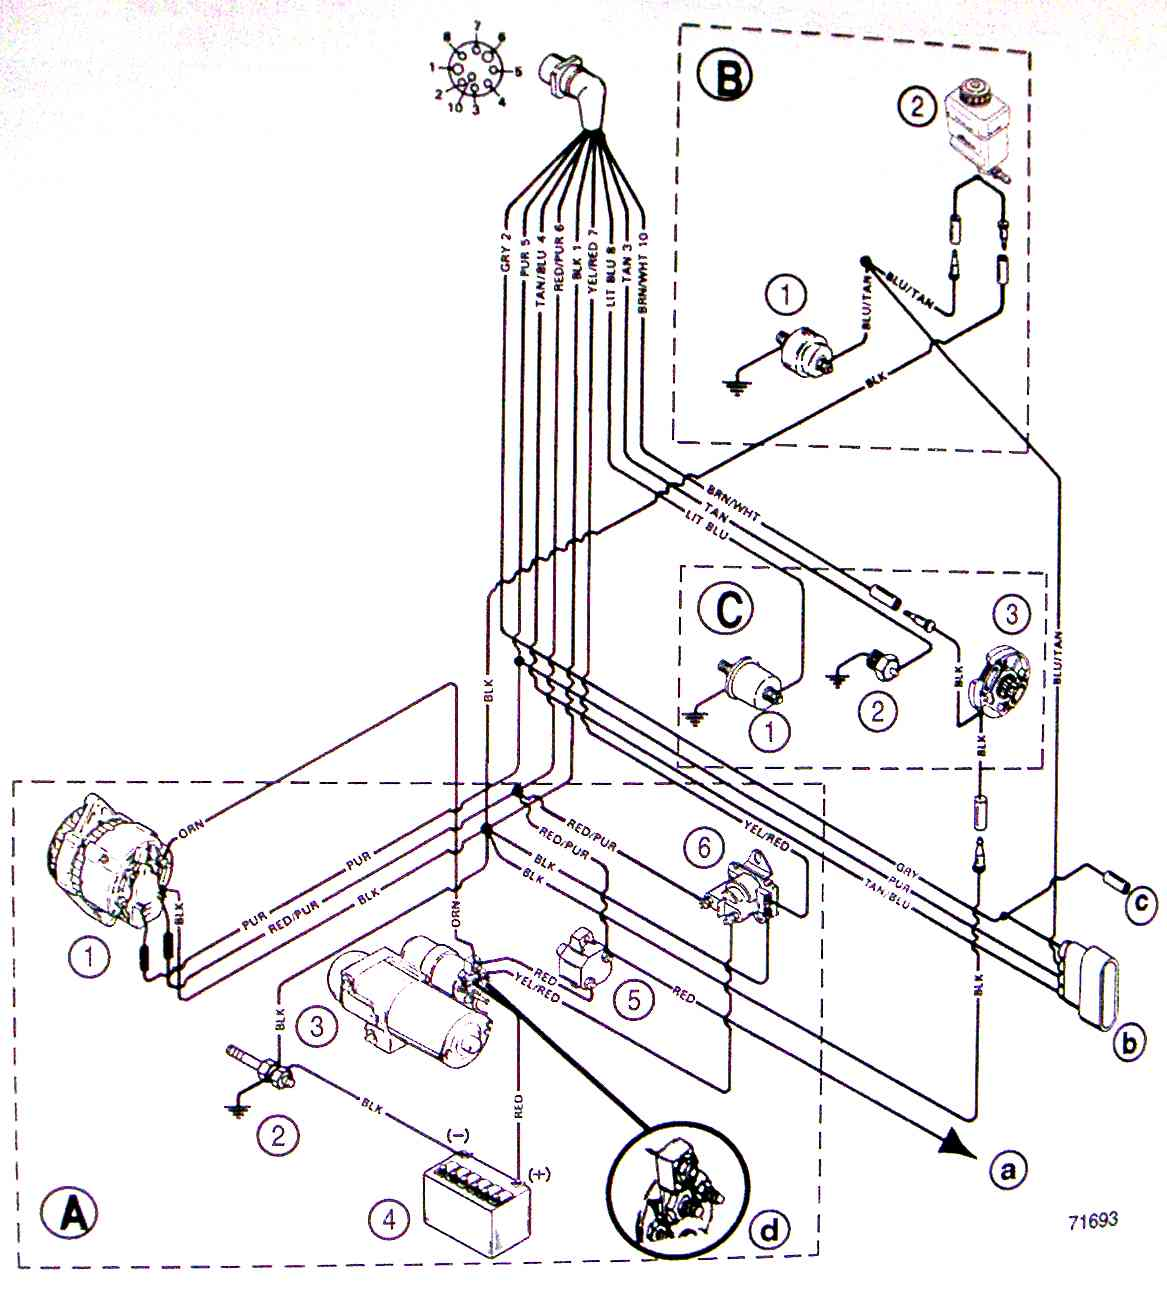 mercruiser trim pump wiring diagram wiring diagram and schematic 1980 mercruiser trim wiring page 1 iboats boating forums 585378